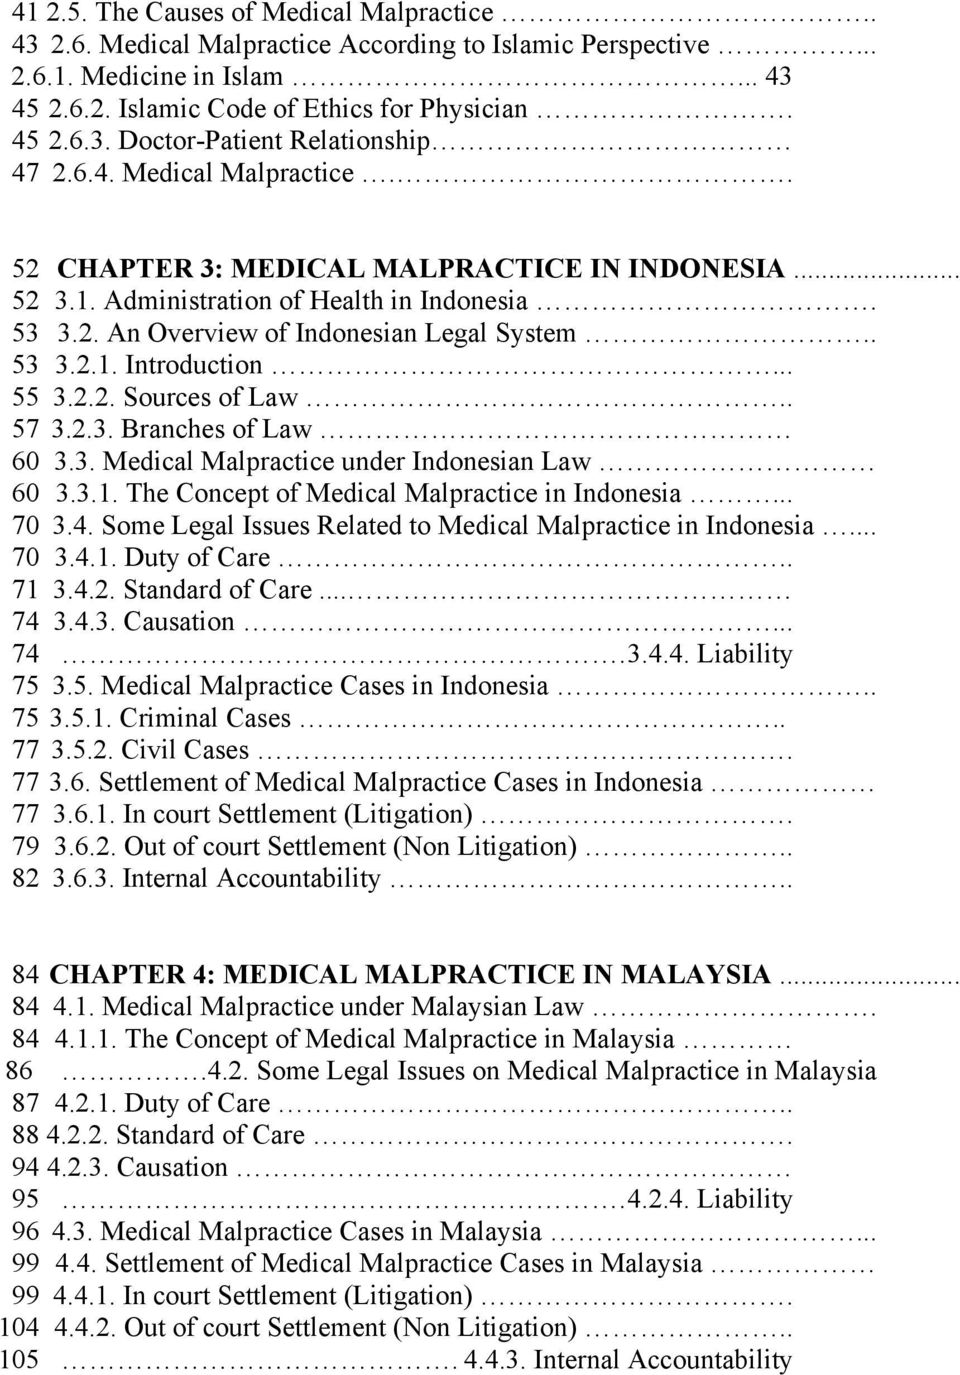 medical malpractice essays 56 research essay criminal liability for gross negligence in medical contexts: should it depend only on consequences samuel mcgowan-smyth faculty of health sciences, university of manchester article info introduction criminal prosecution following medical malpractice in the uk is somewhat of a rare.